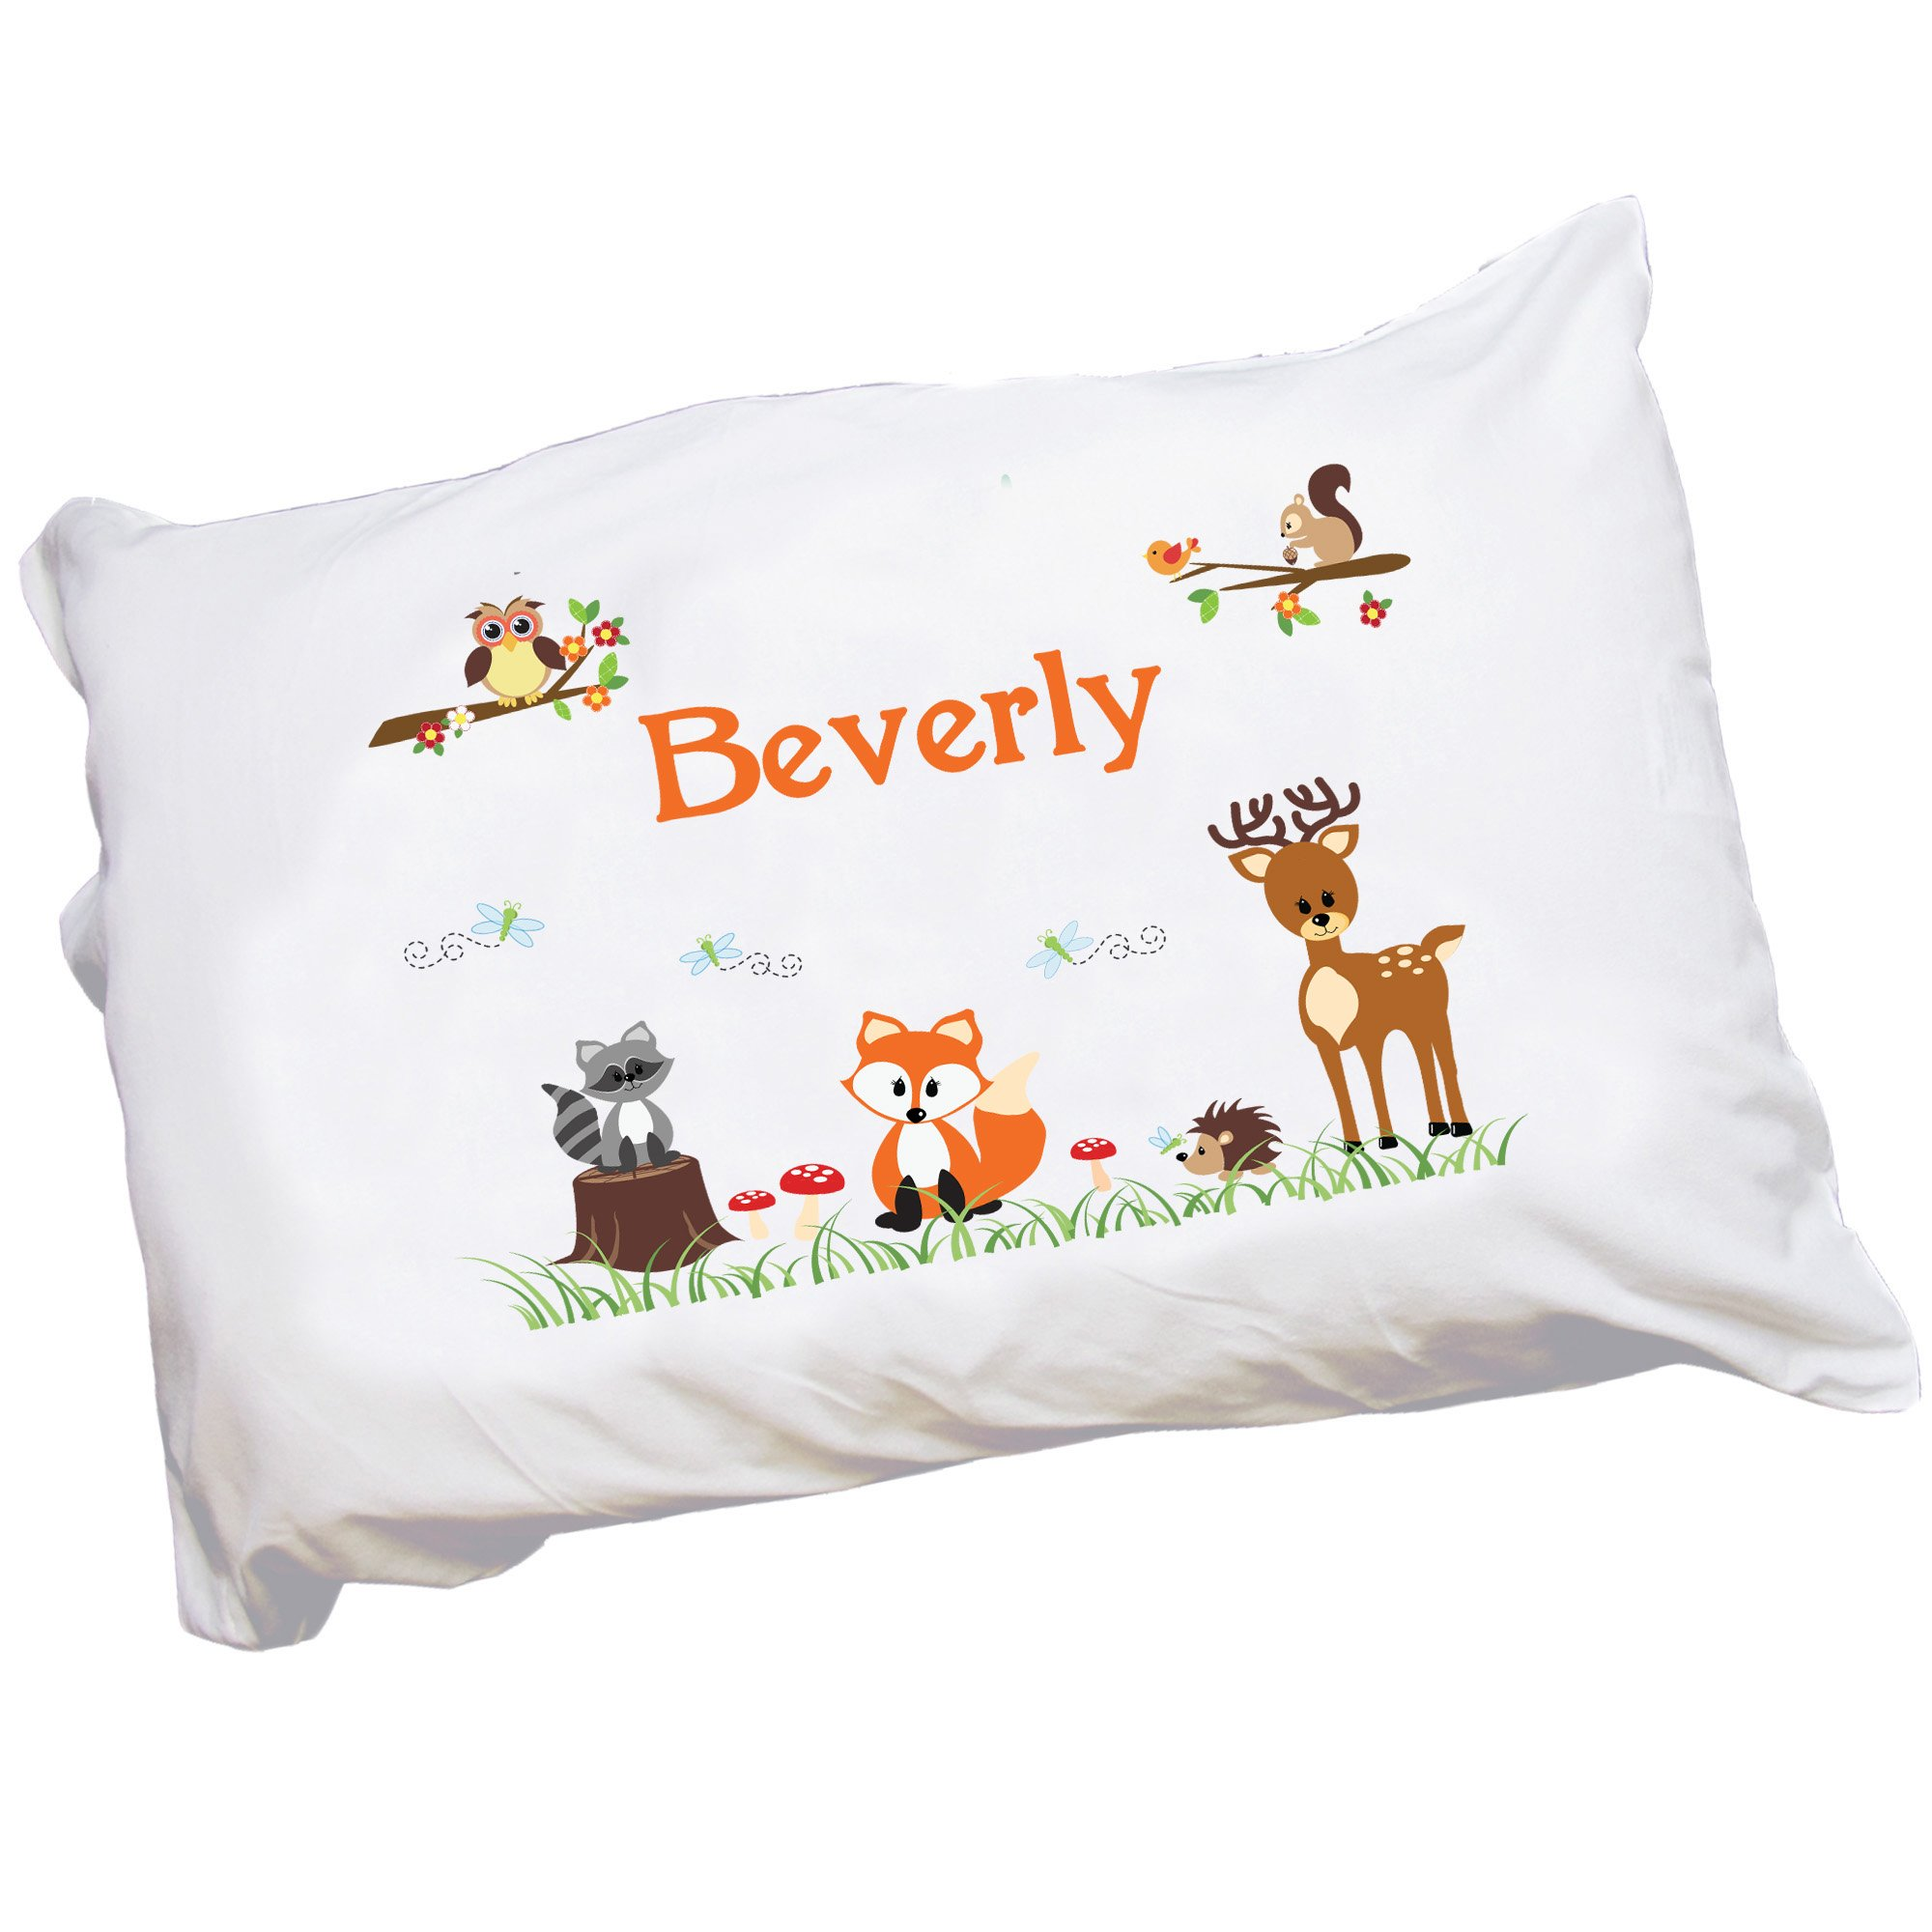 Personalized Childrens Pillowcase with Coral Forest Animals design